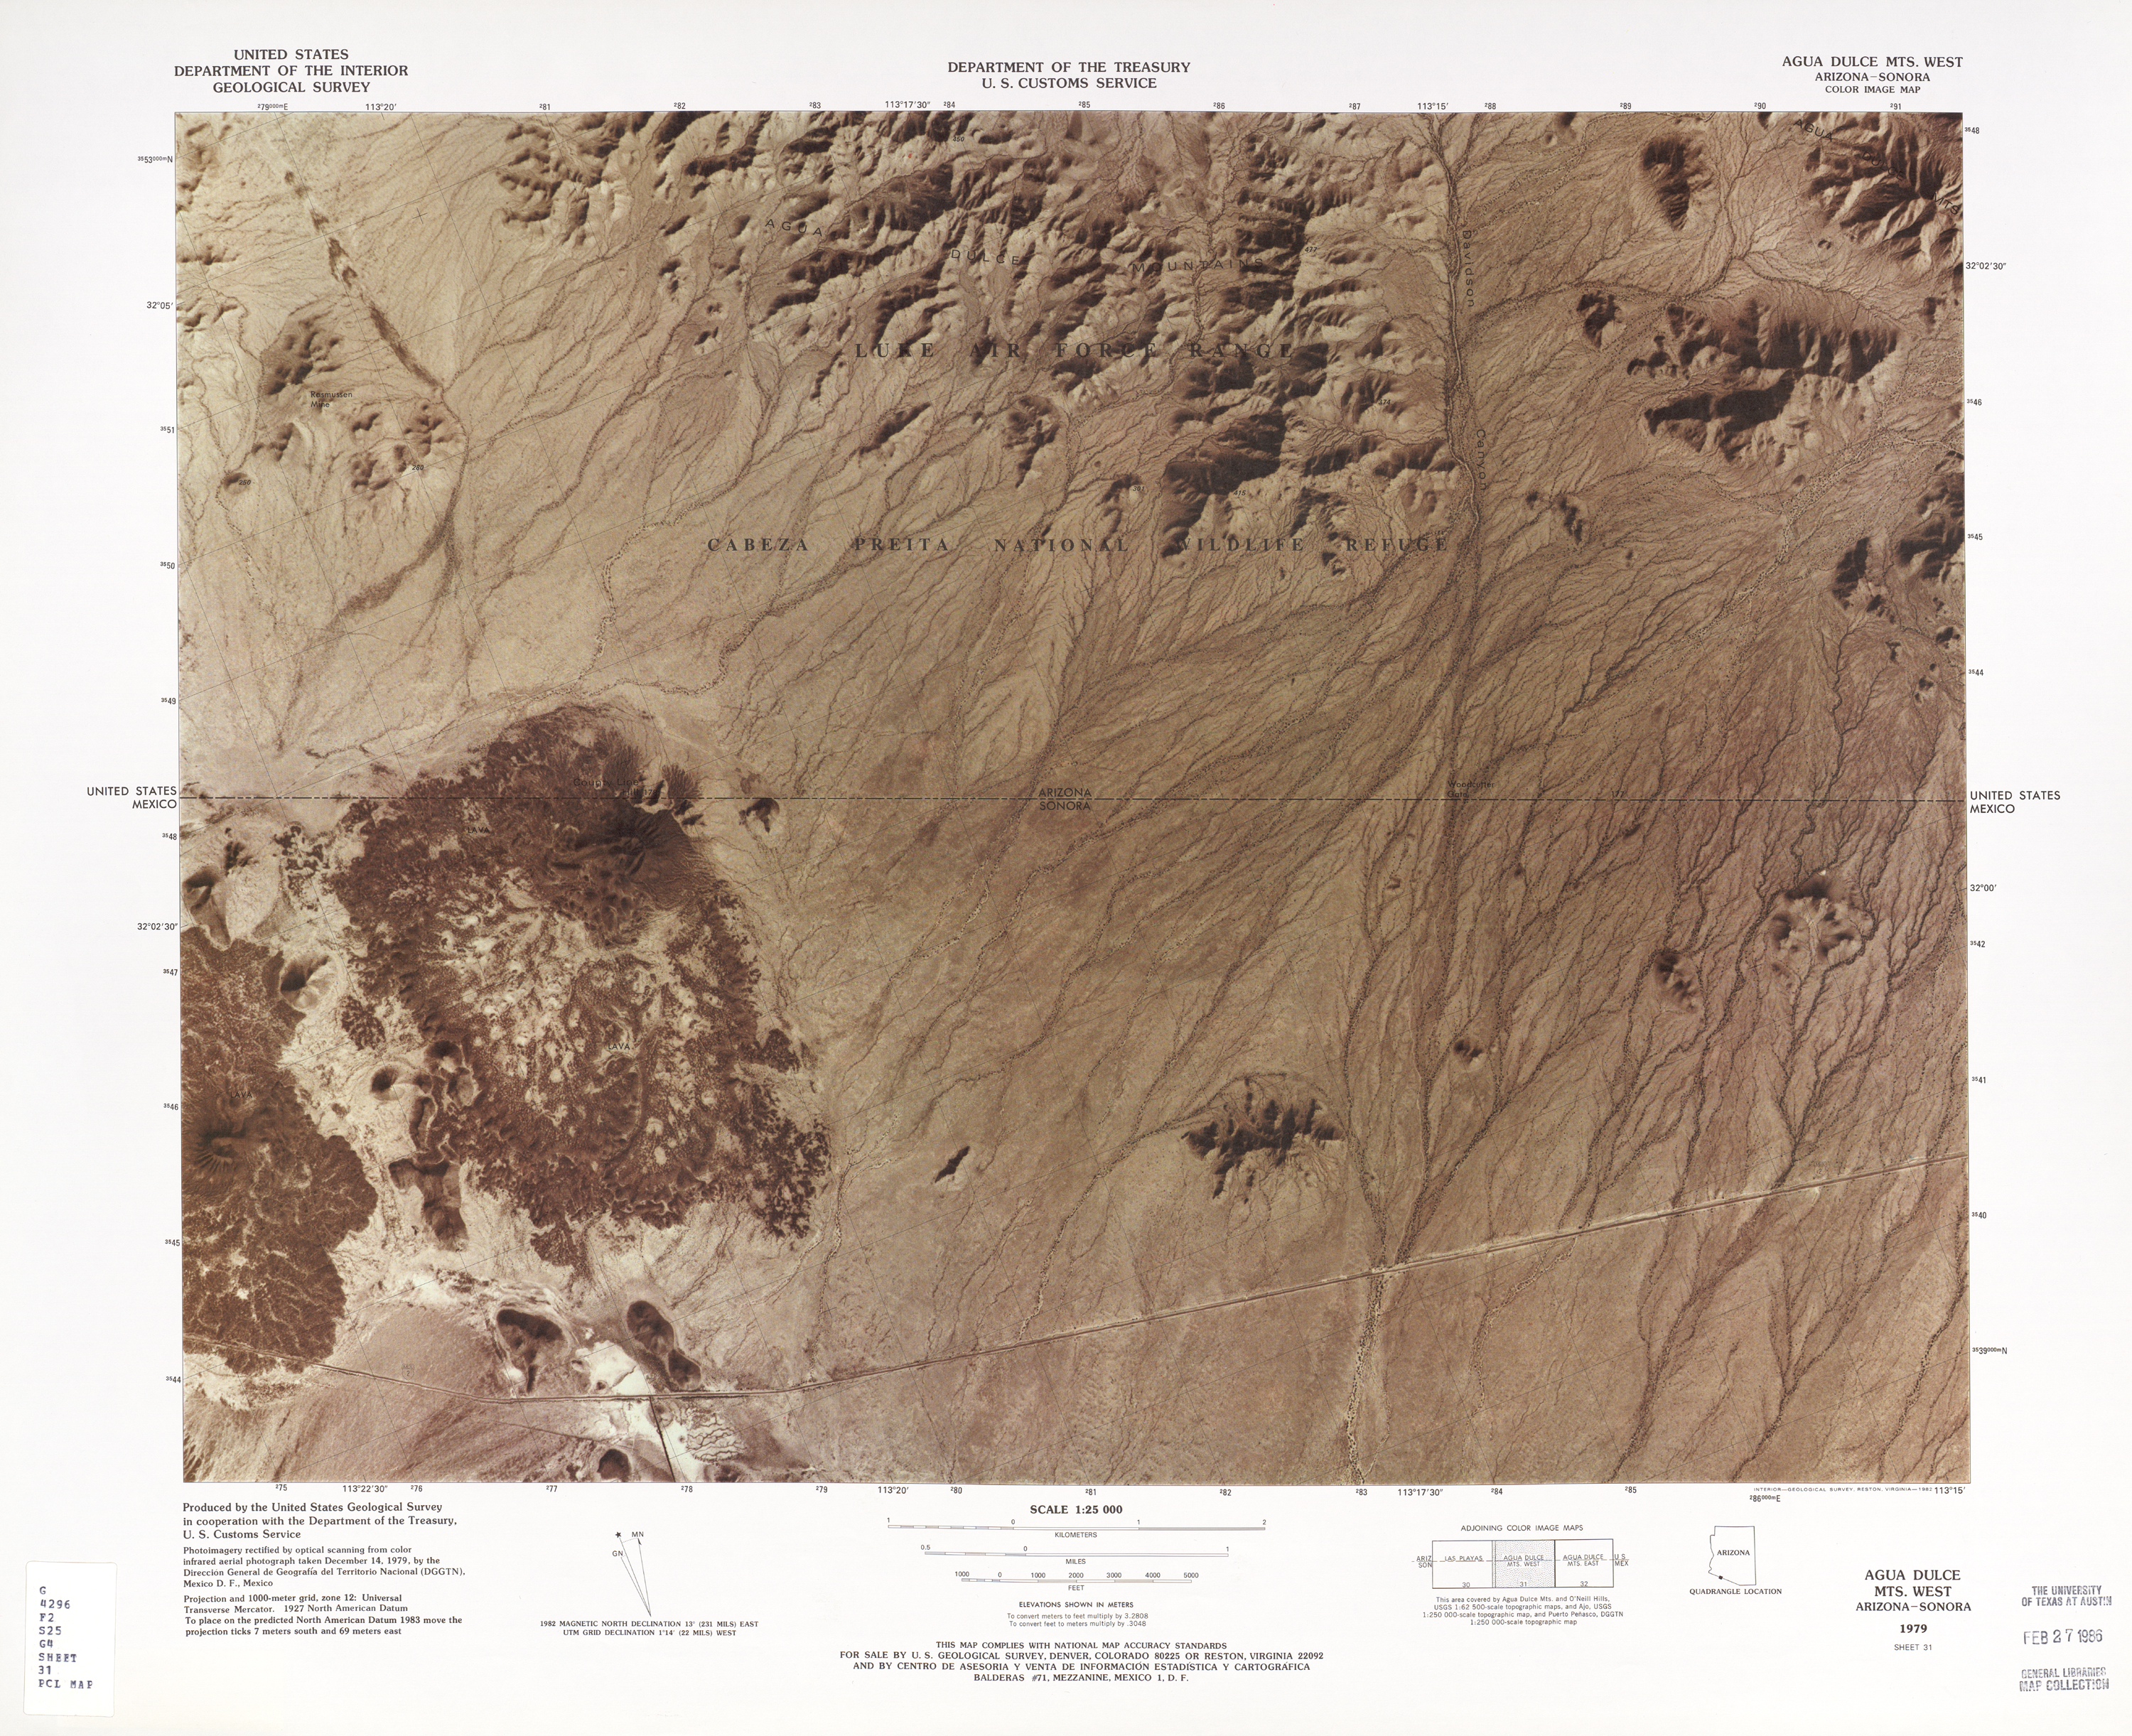 United States-Mexico Border Map, Agua Dulce Mts. West